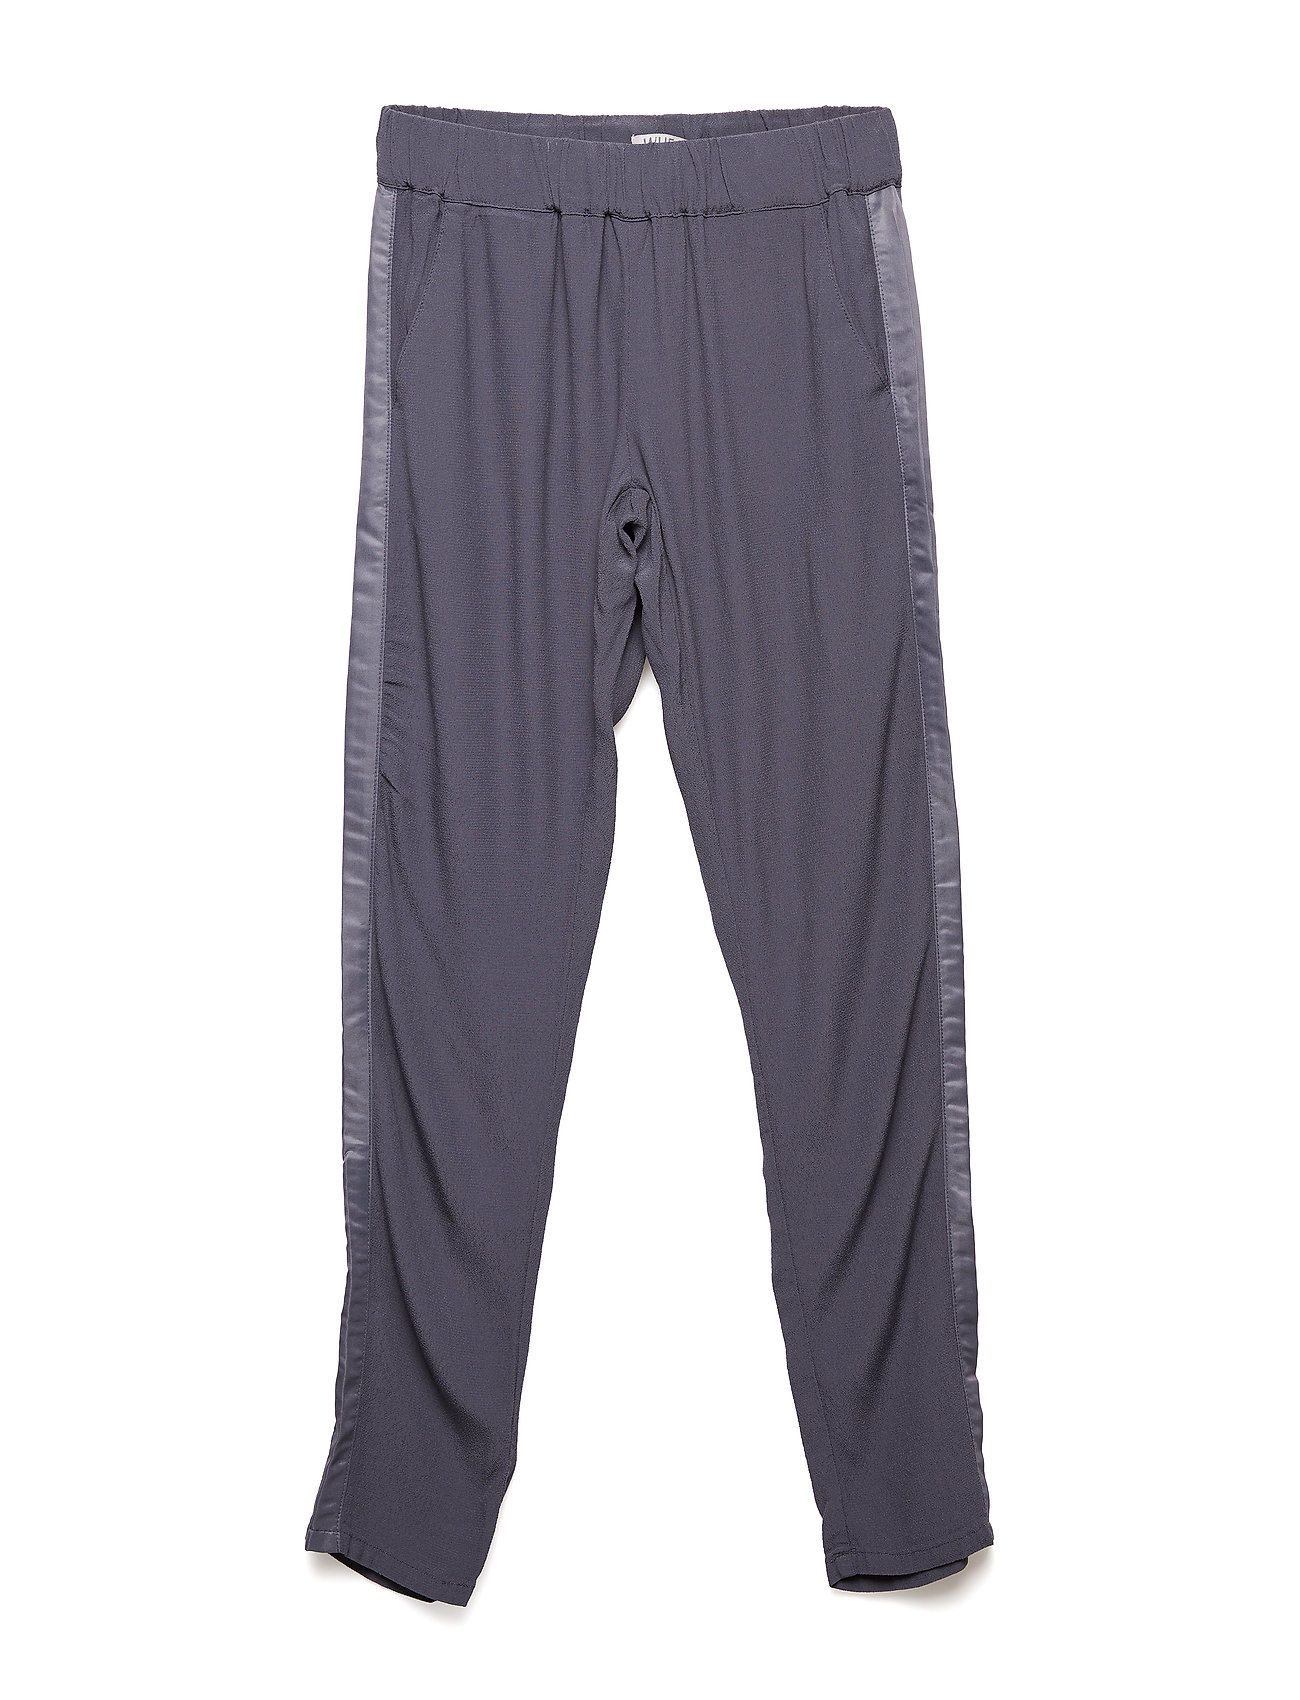 Wheat Trousers Violetta - GREYBLUE